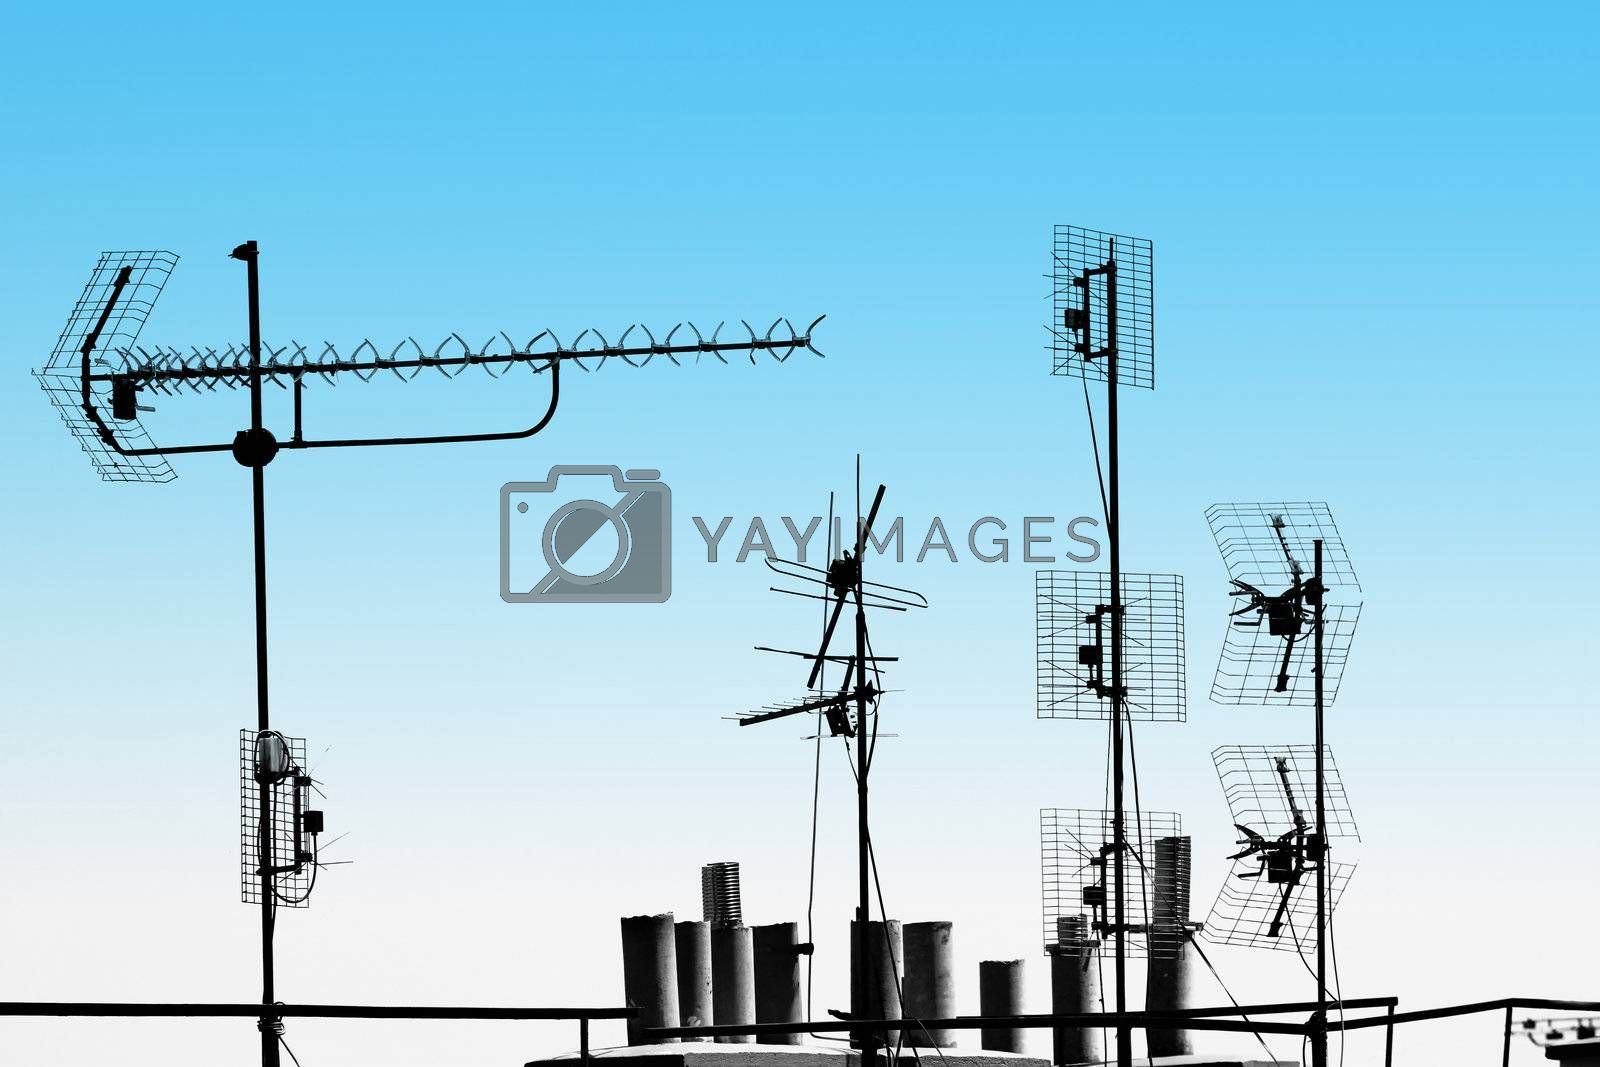 television antennas and pipes on the rooftop